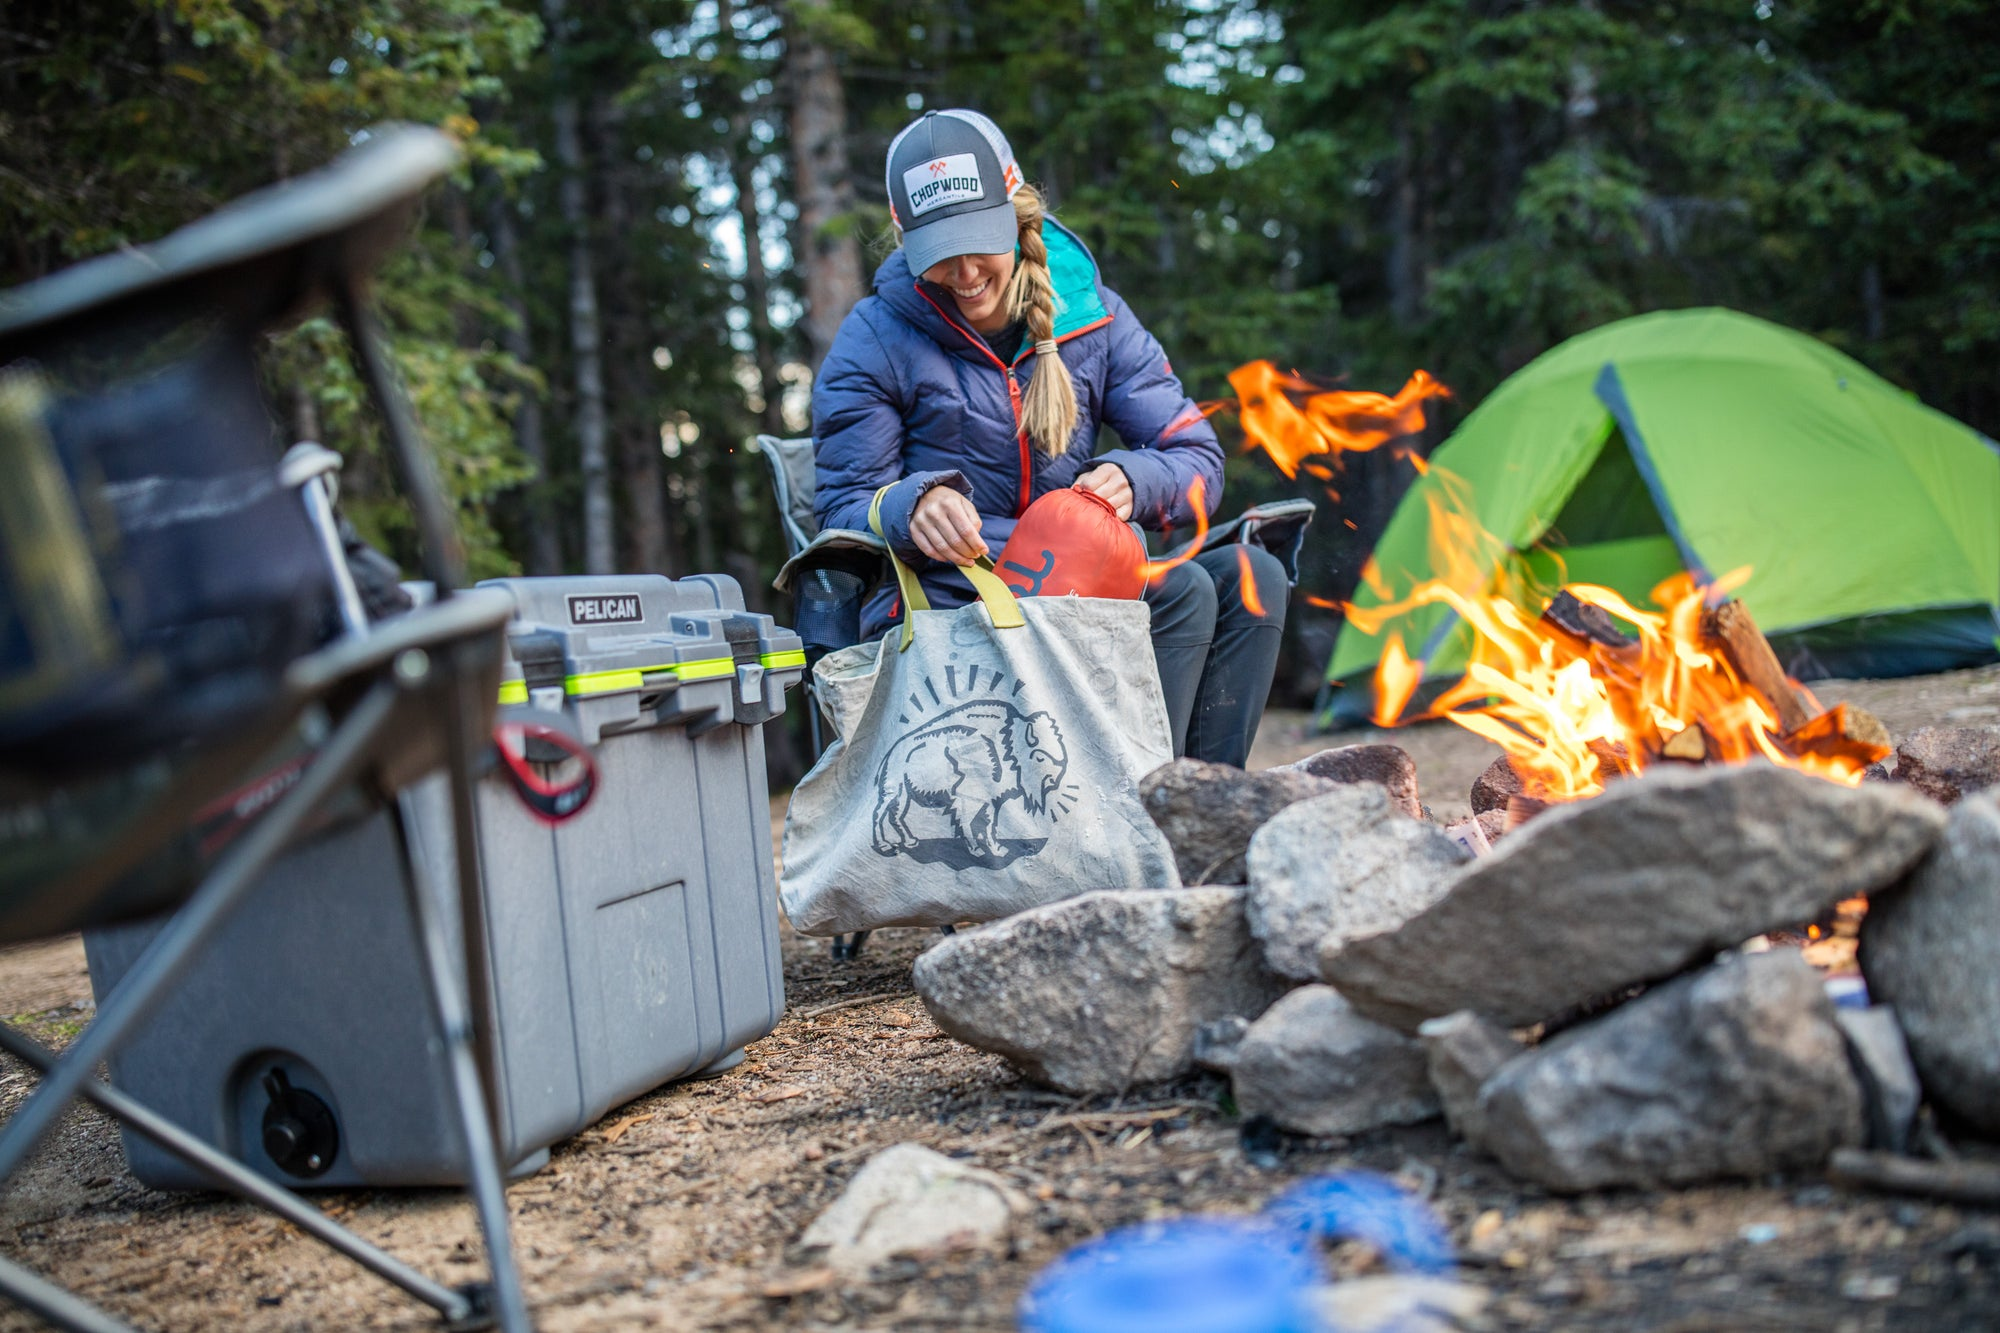 TOP 5 CHOPWOOD ITEMS FOR FALL CAMPING: RAIN, SNOW, OR SHINE